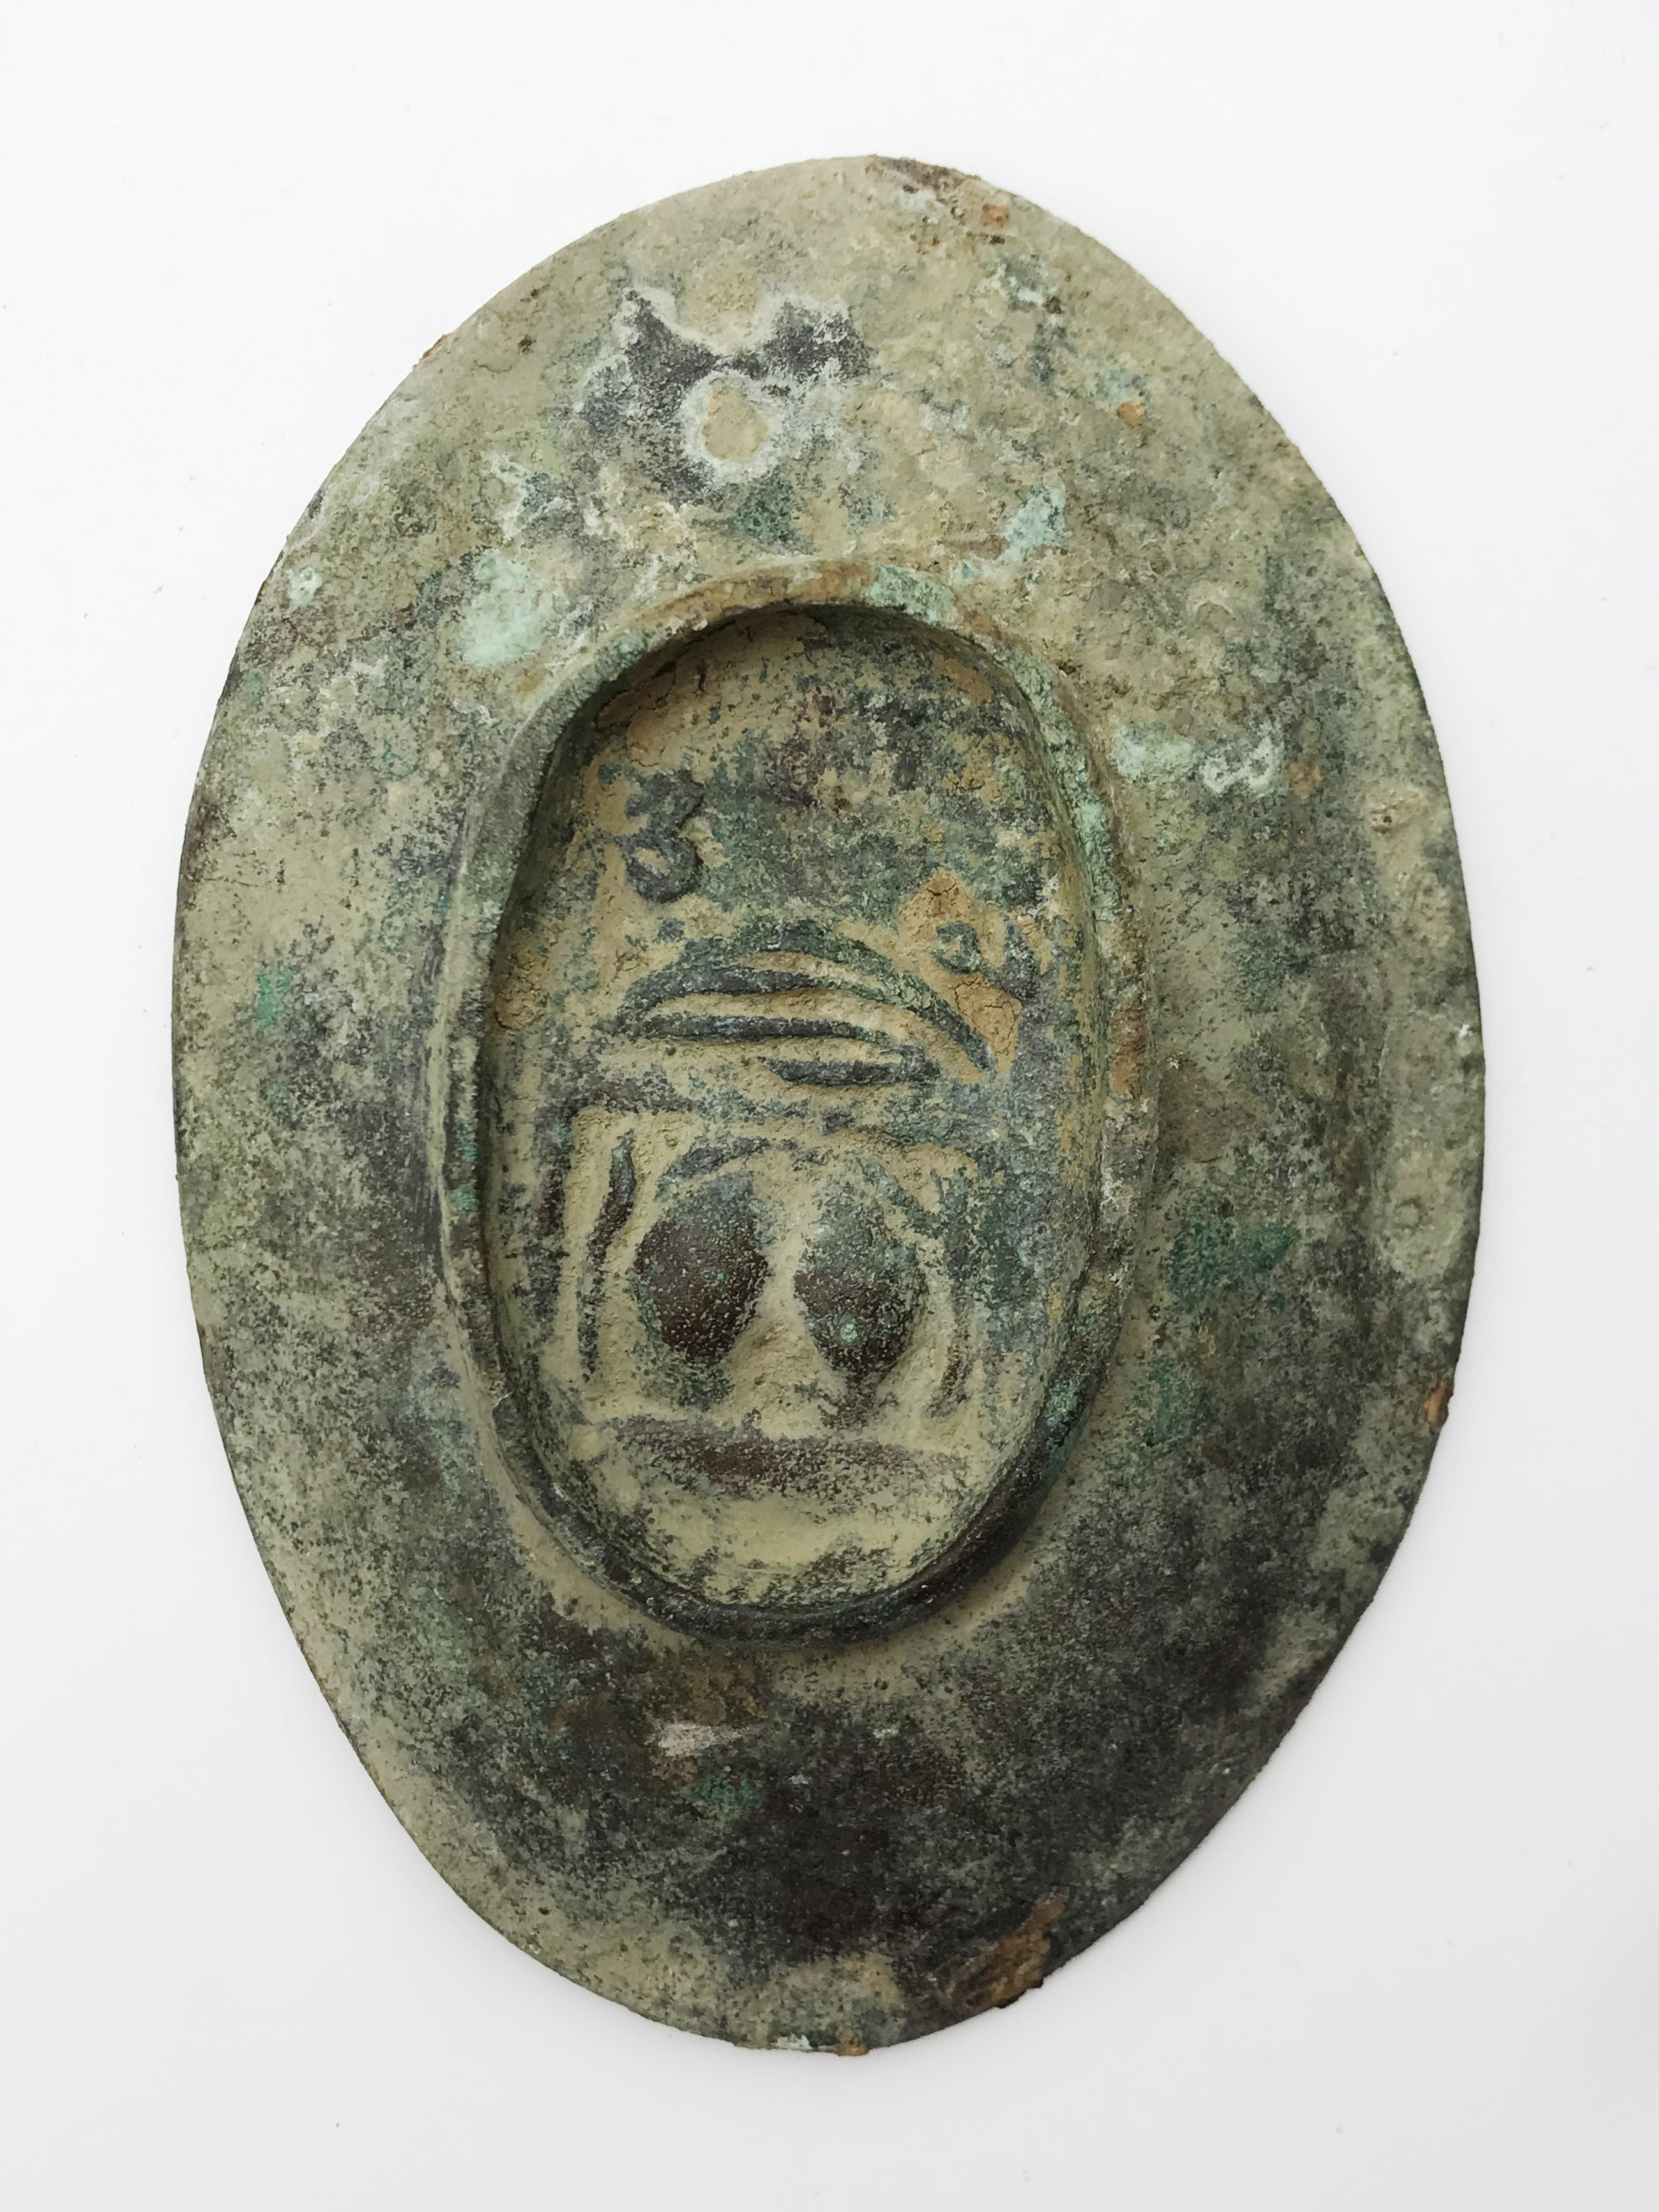 Lot 14 - EARLY METAL PIN DISH WITH NAUGHTY SIDE